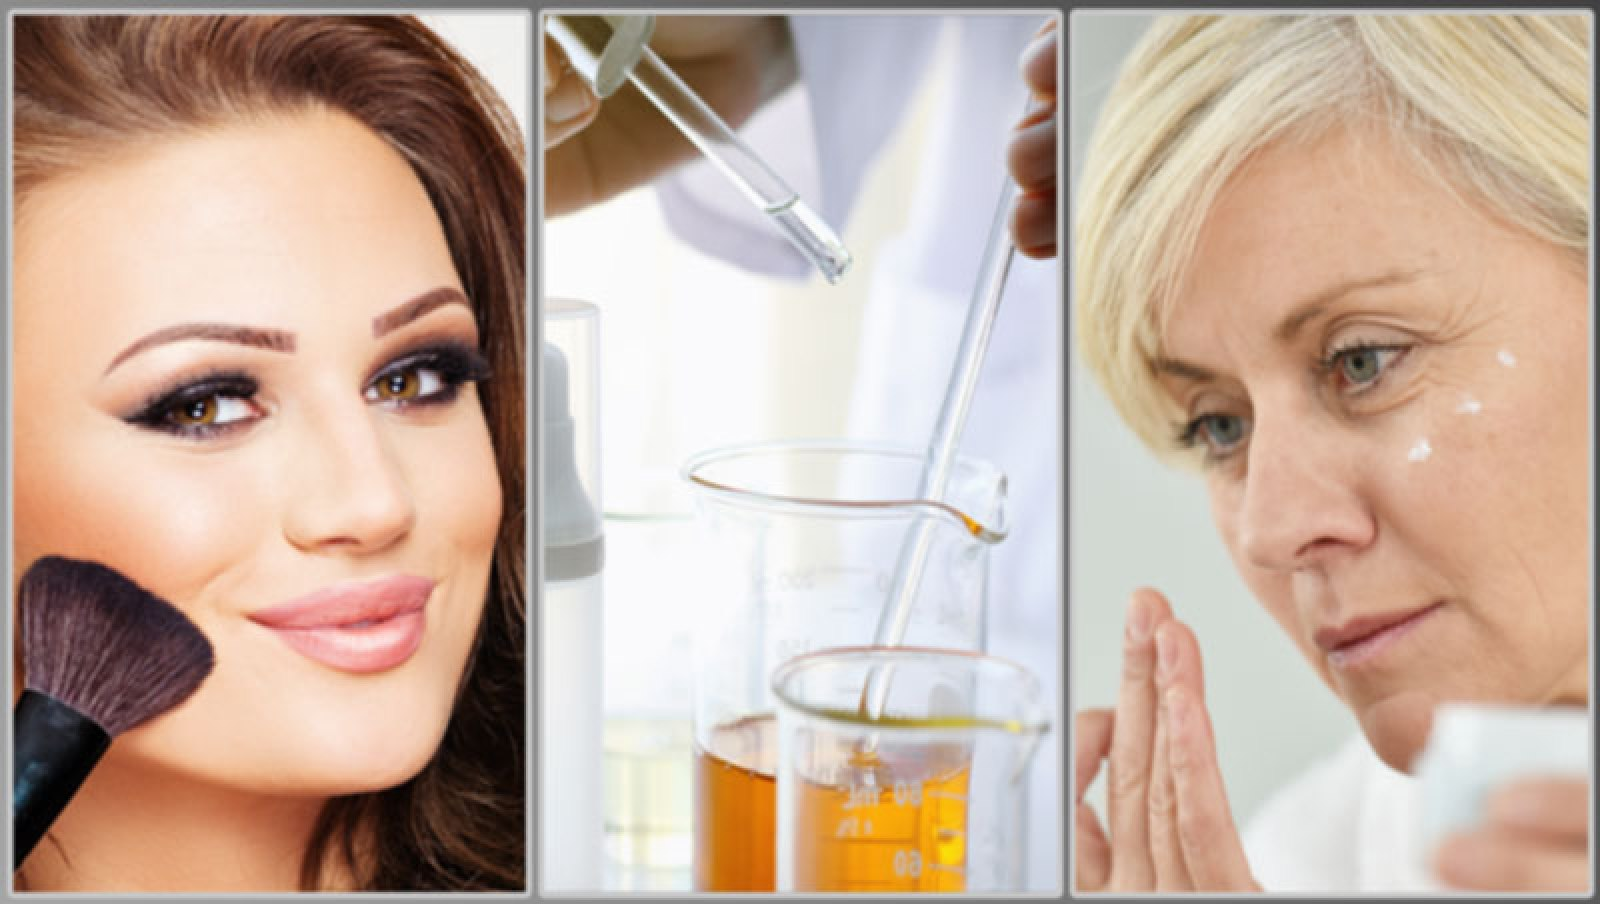 Advanced Skin Care - Makeup, Skin Care, Expertise